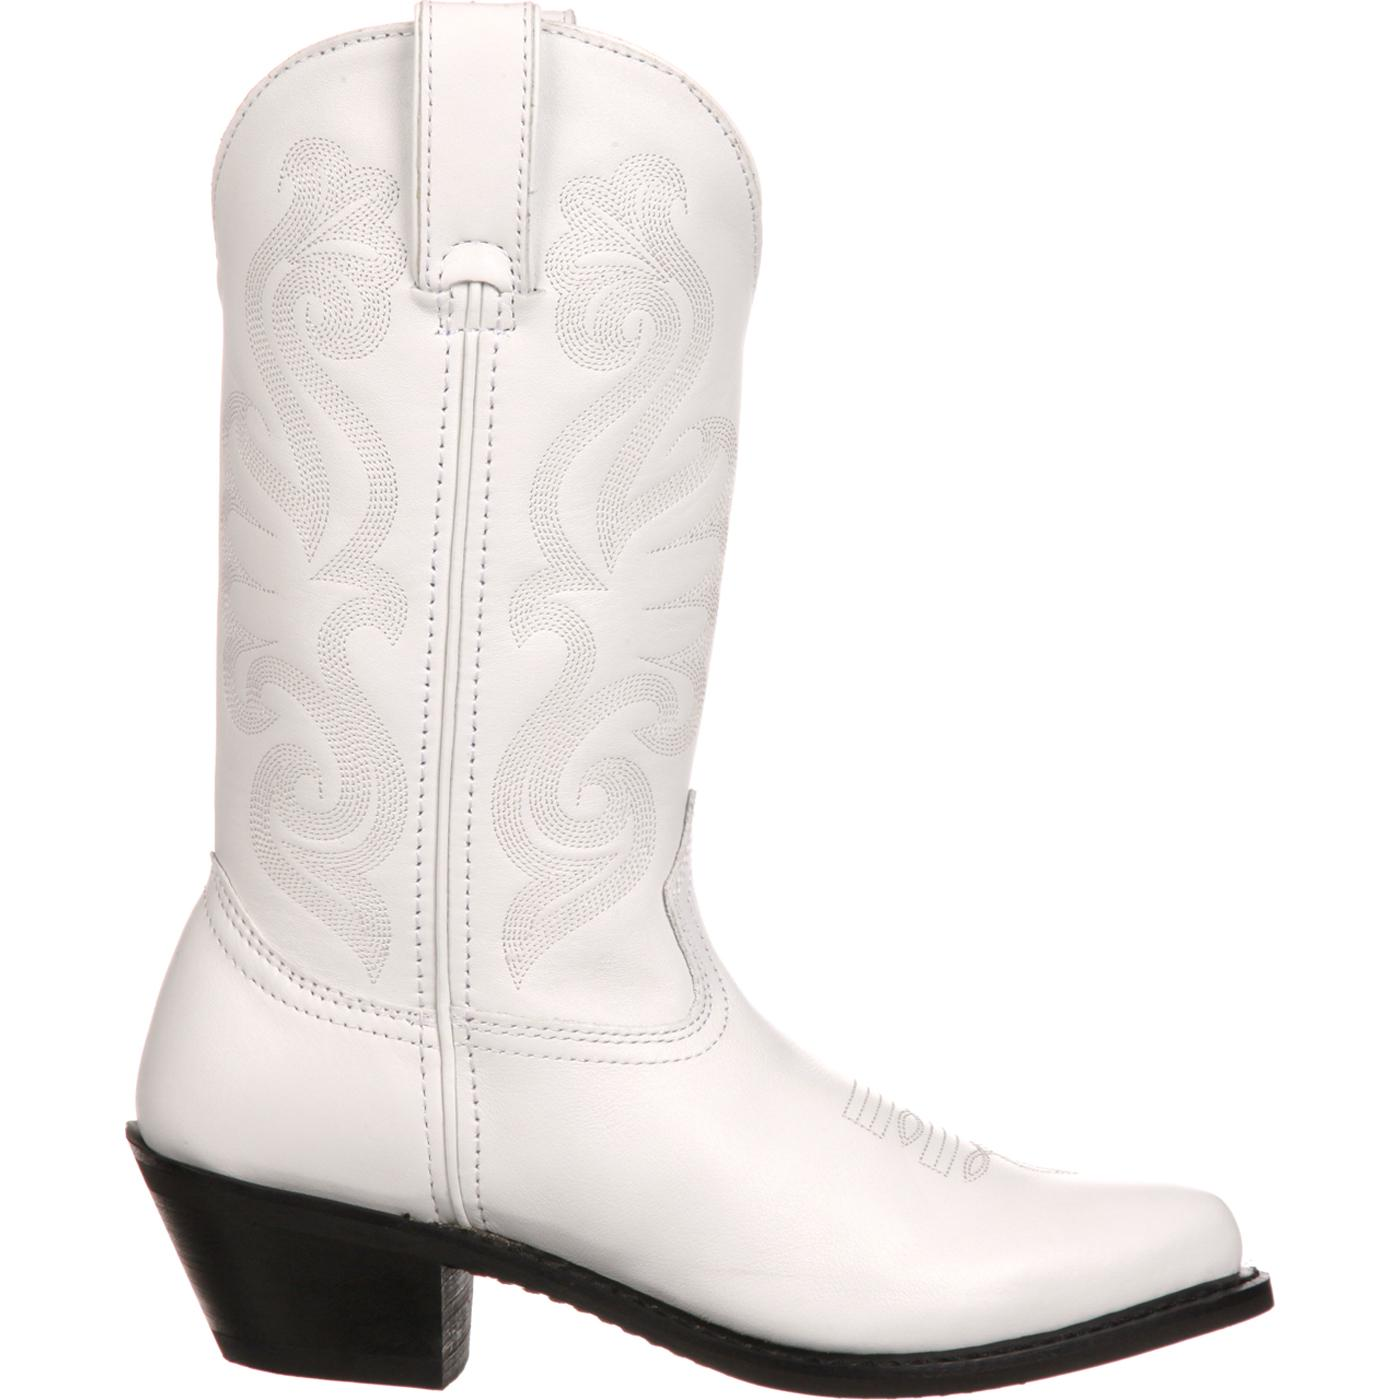 durango s white leather western boots style rd4111